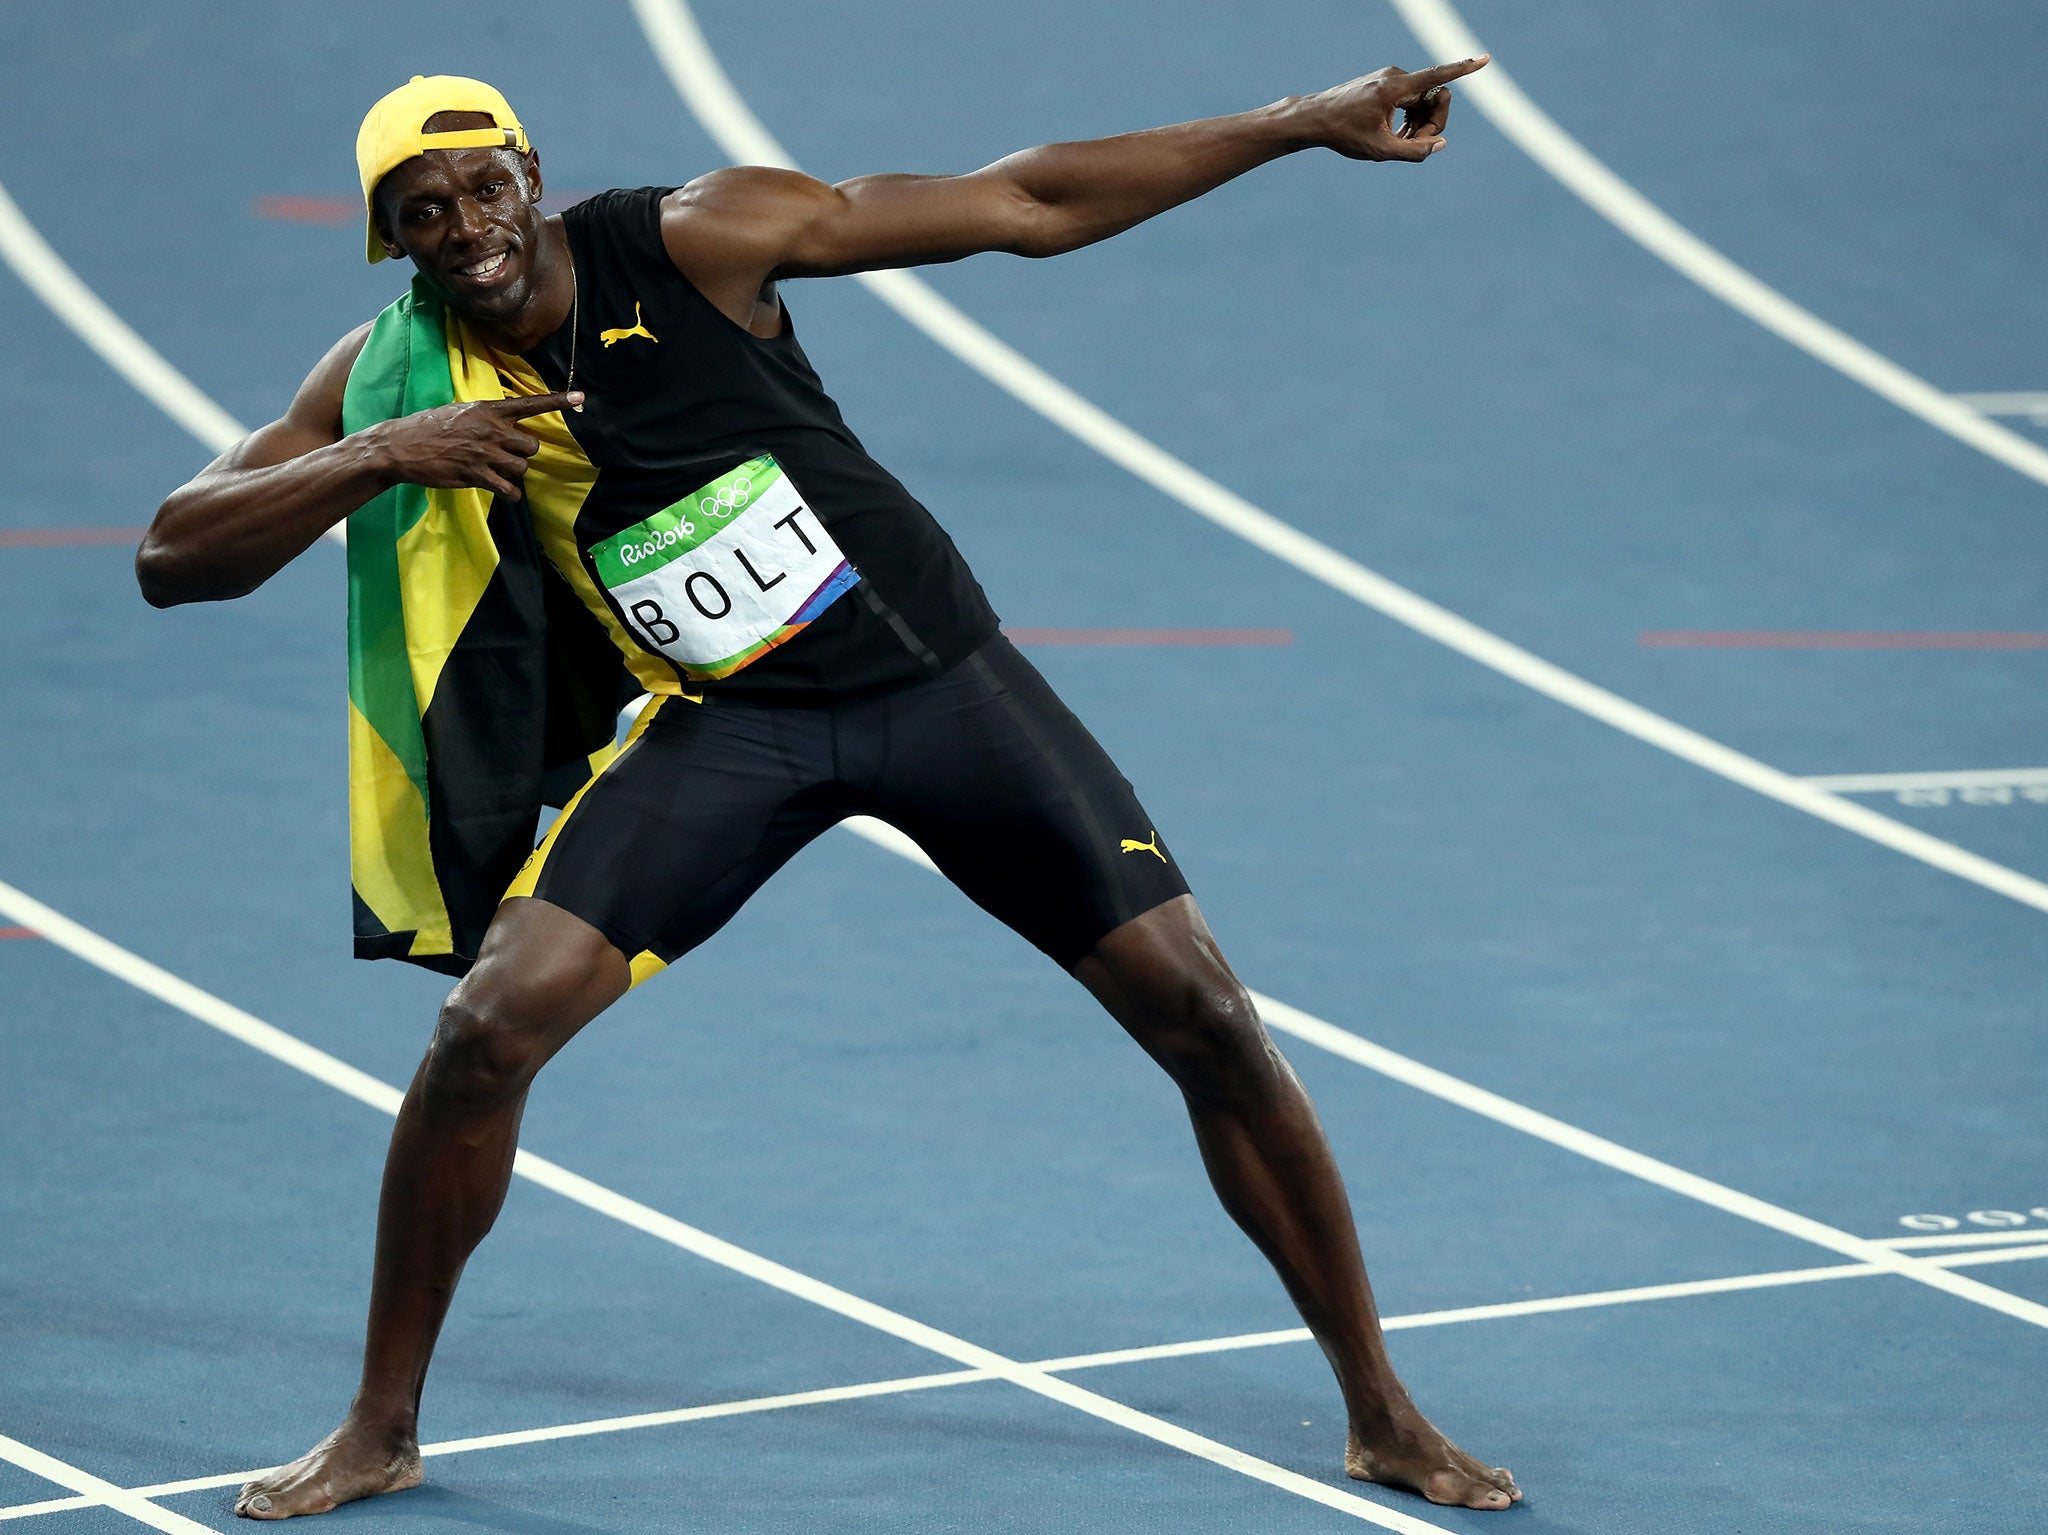 Rio 2016: Of the 30 fastest 100m times ever, only nine were